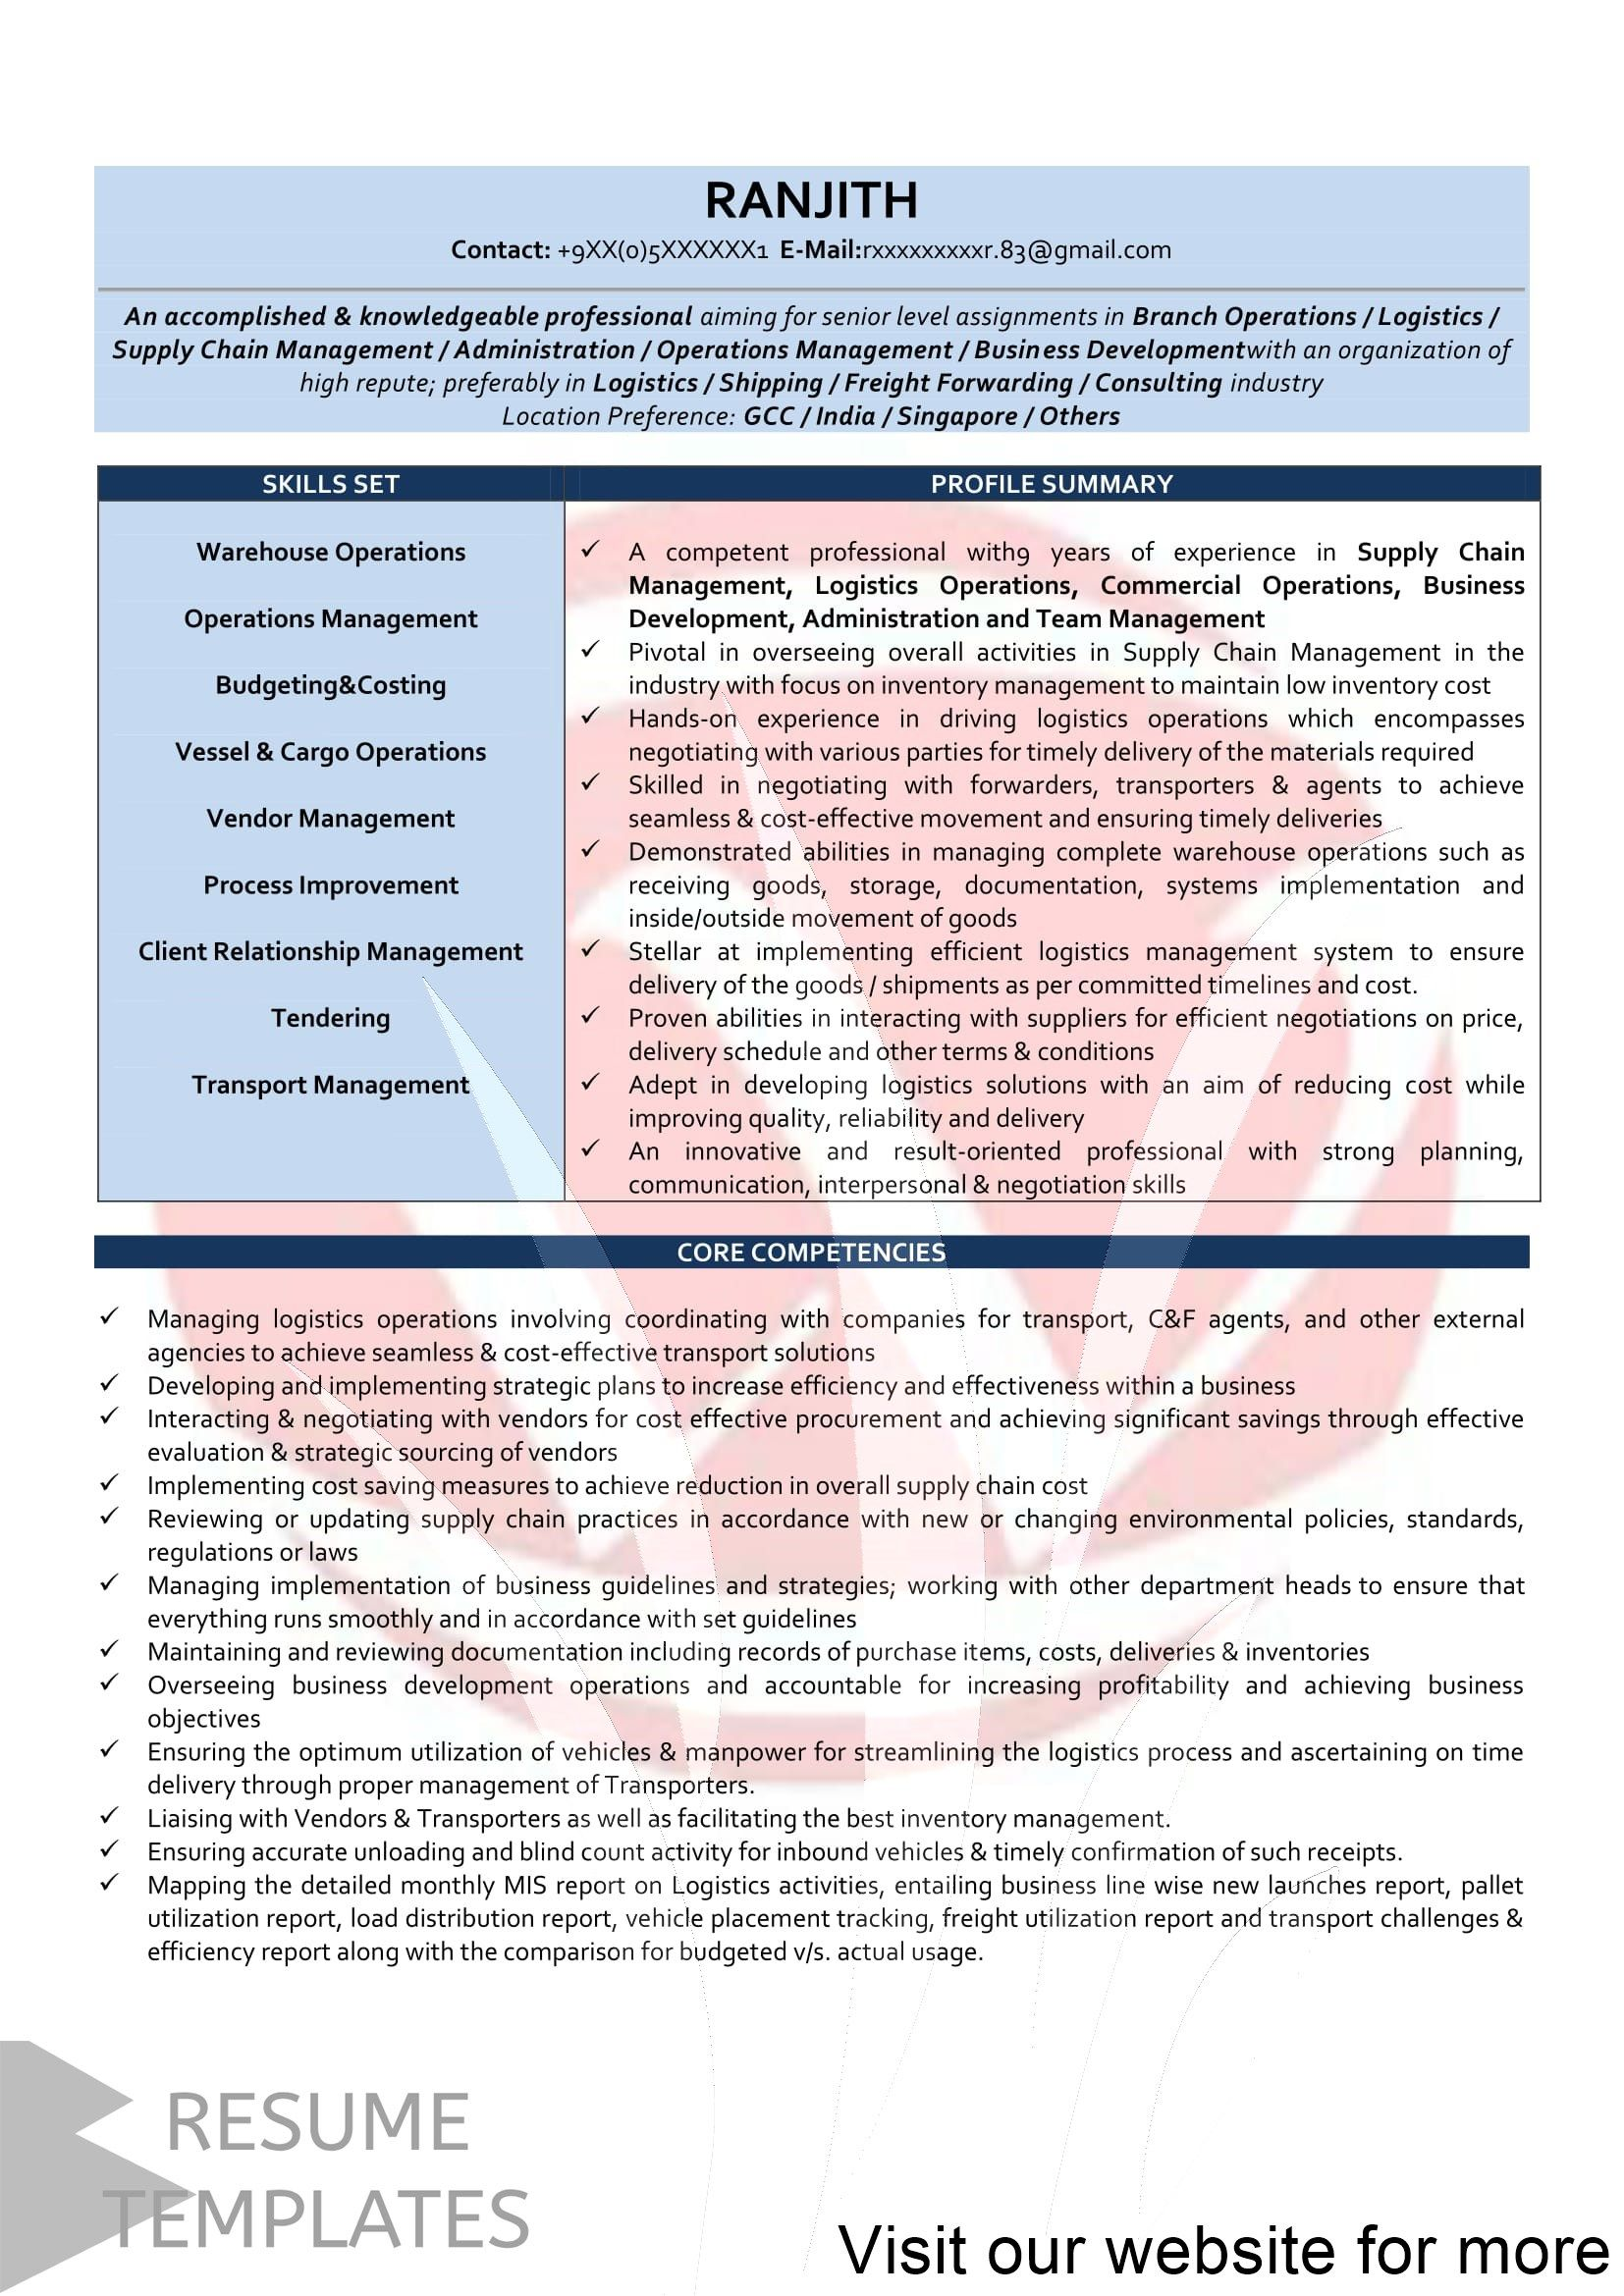 resume builder account Professional Professional in 2020